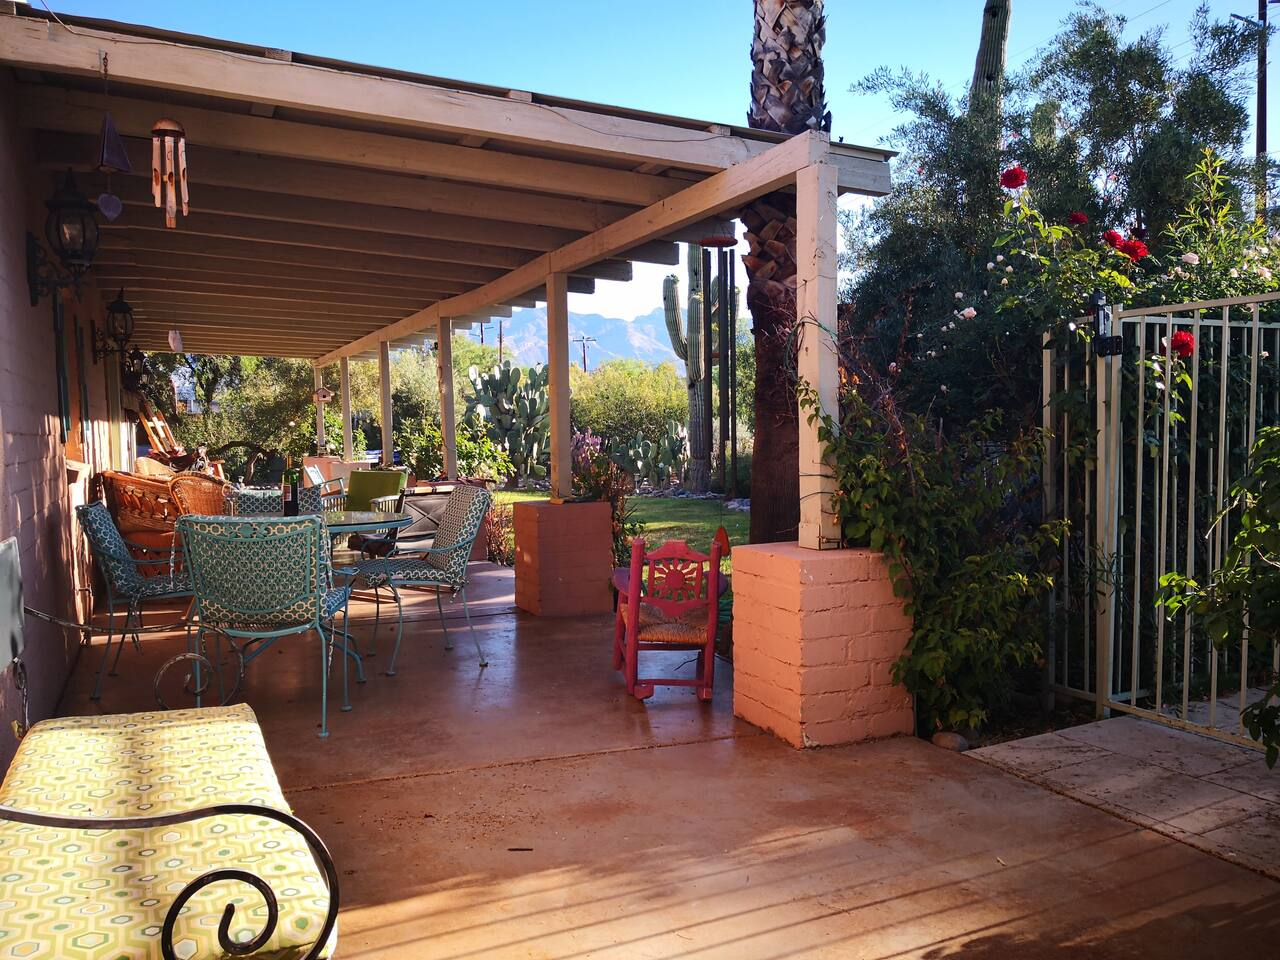 The long terrace facing east, great for watching the garden action!  The Catalina Mountains in view to the north.